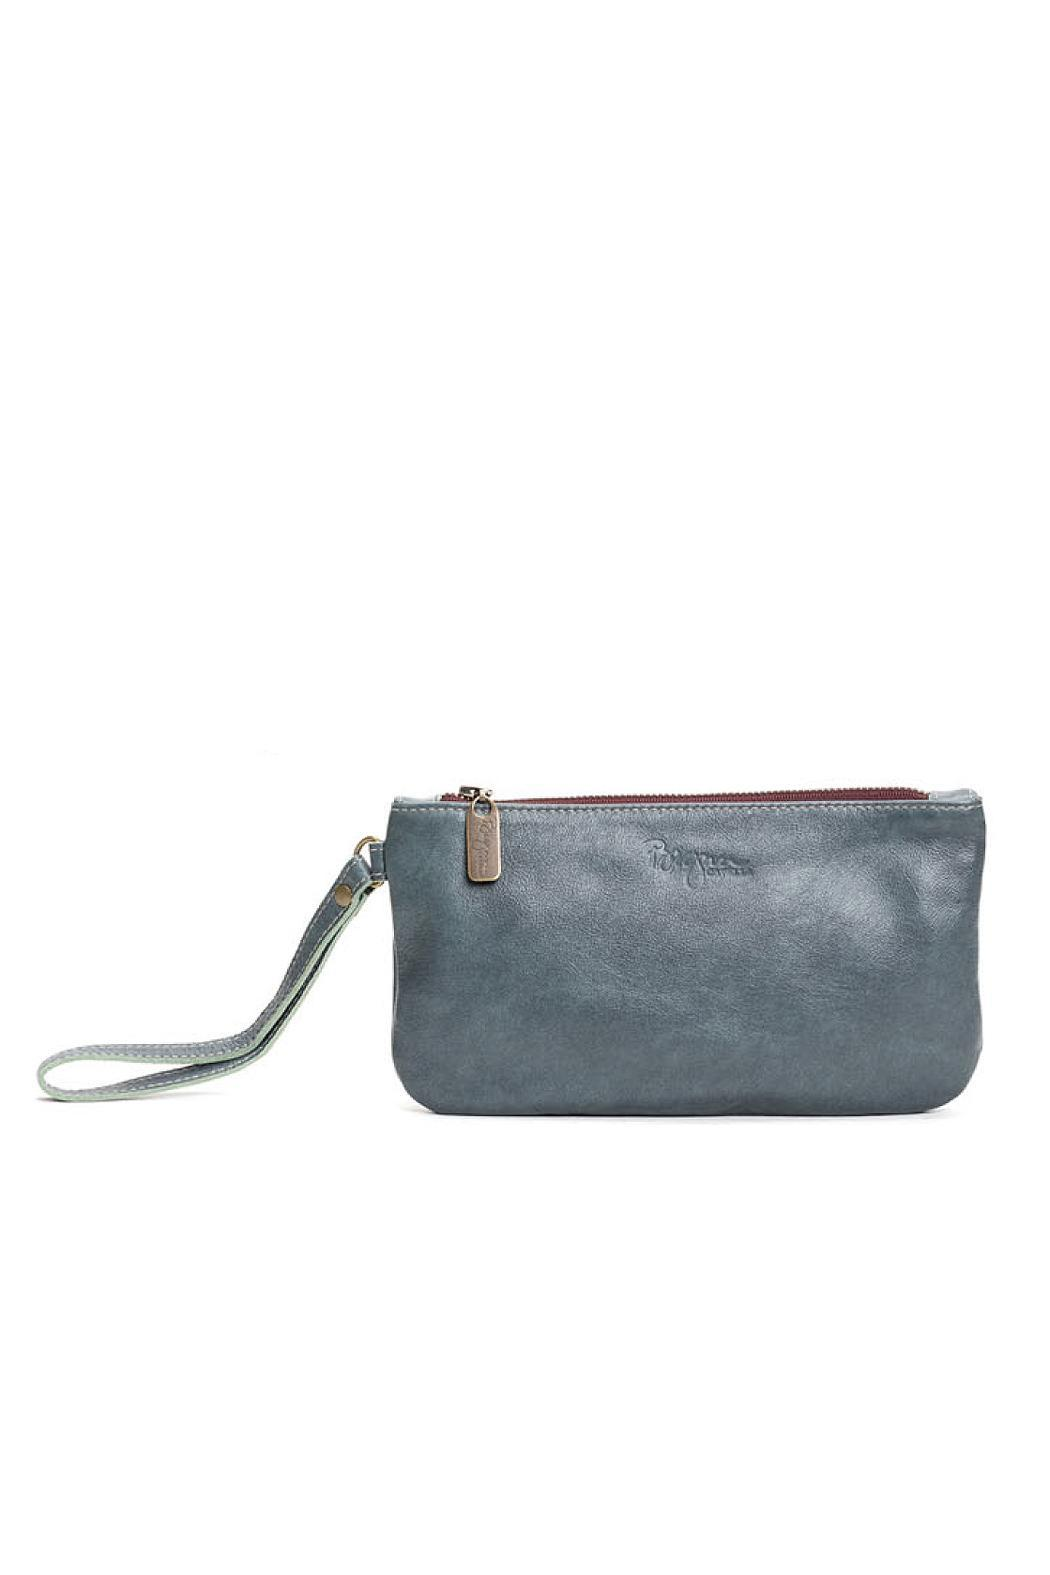 Brynn Capella Cher Wristlet Wallet - Front Cropped Image